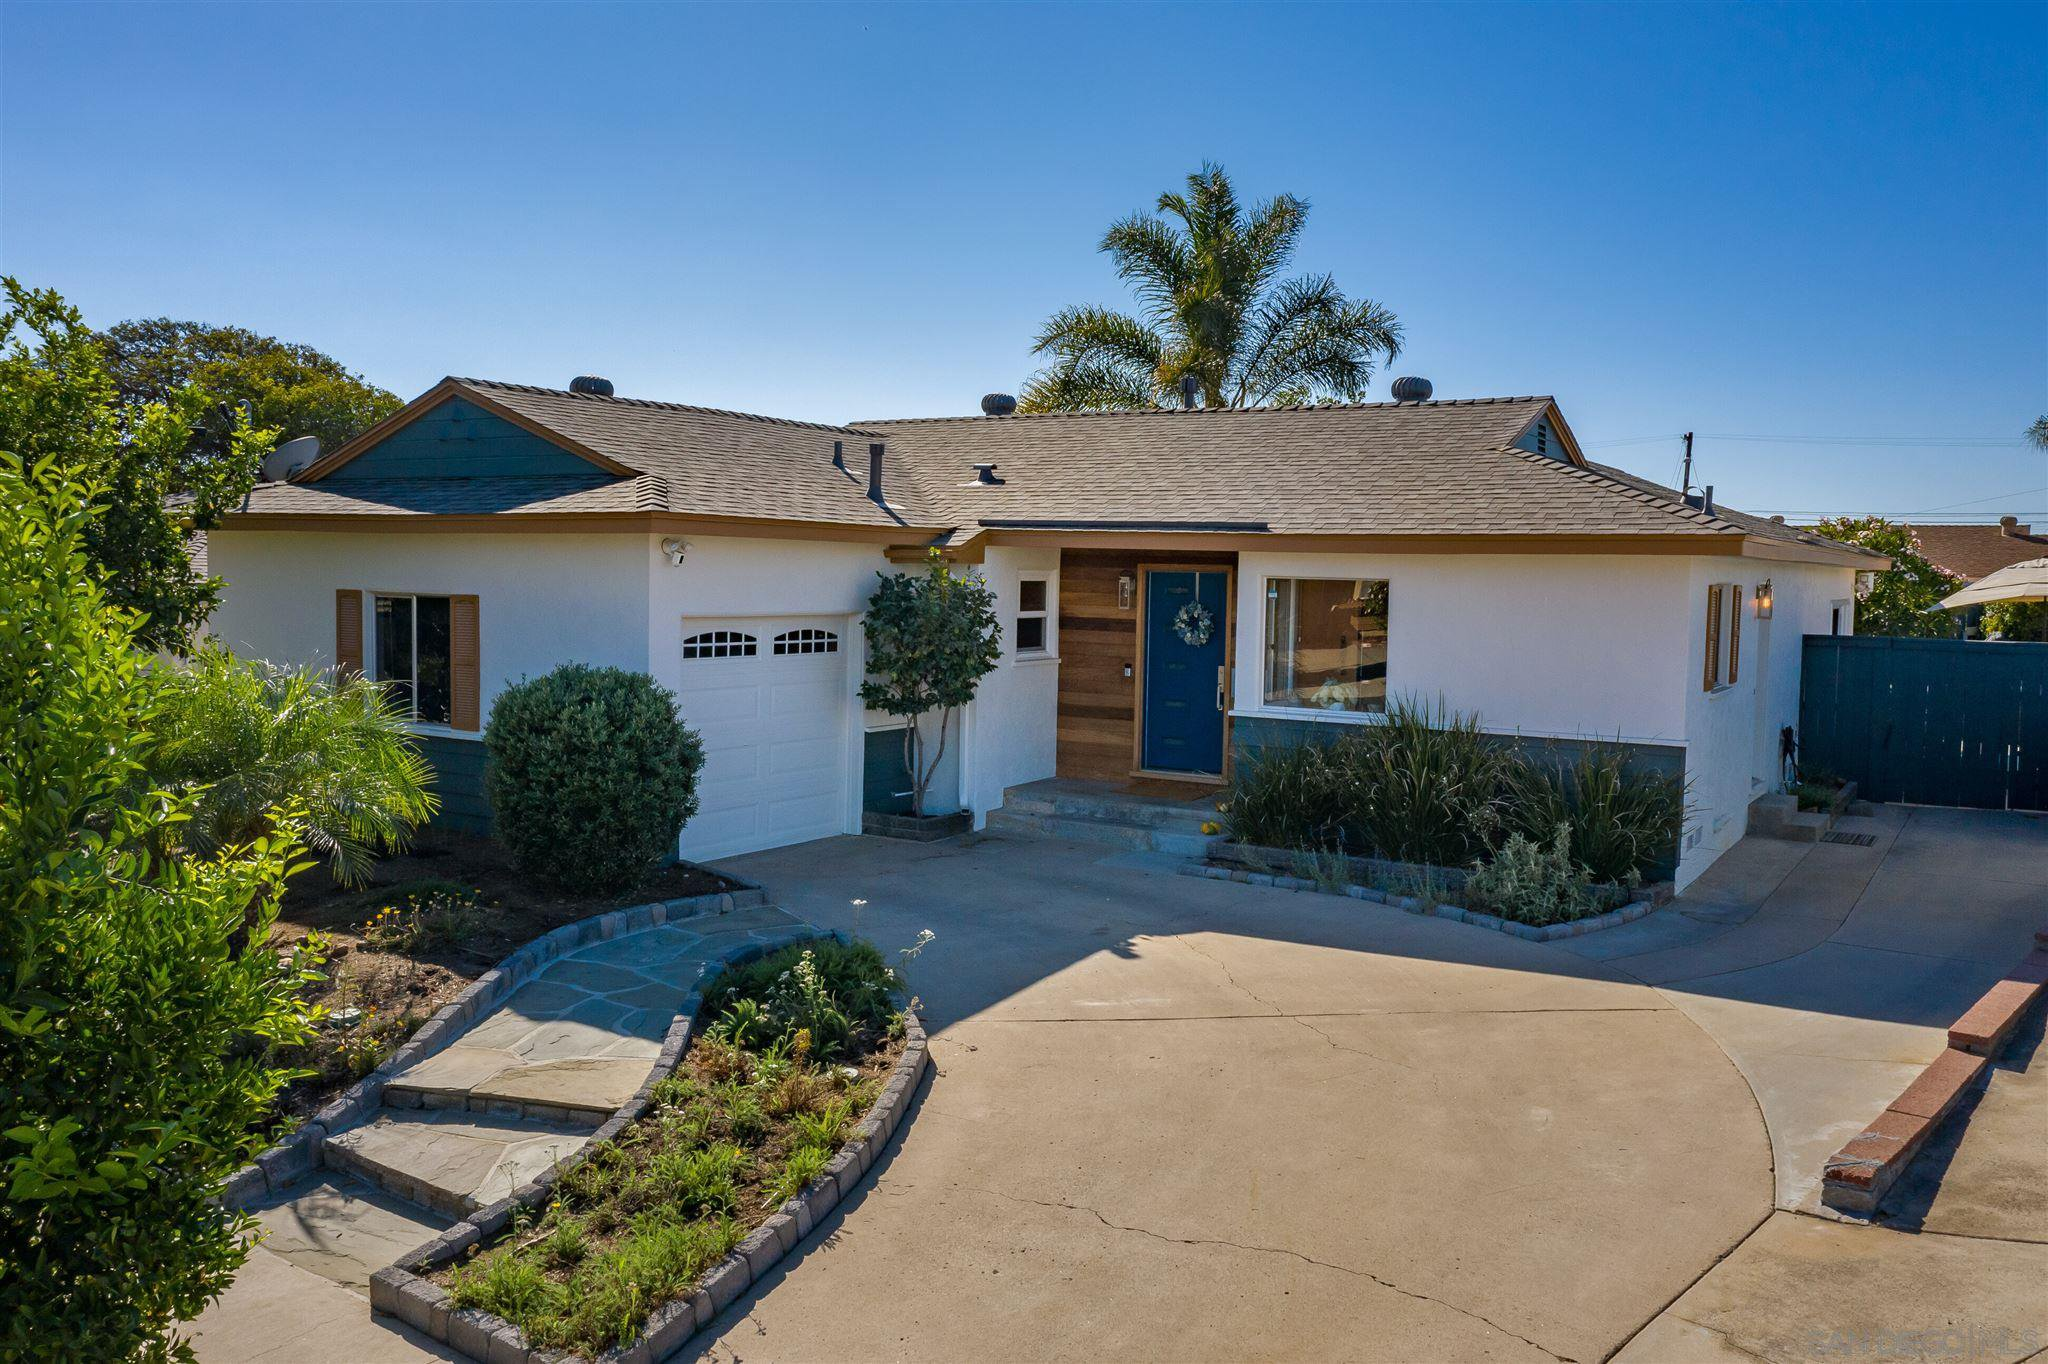 Main Photo: House for sale : 4 bedrooms : 6152 Estrella Ave in San Diego